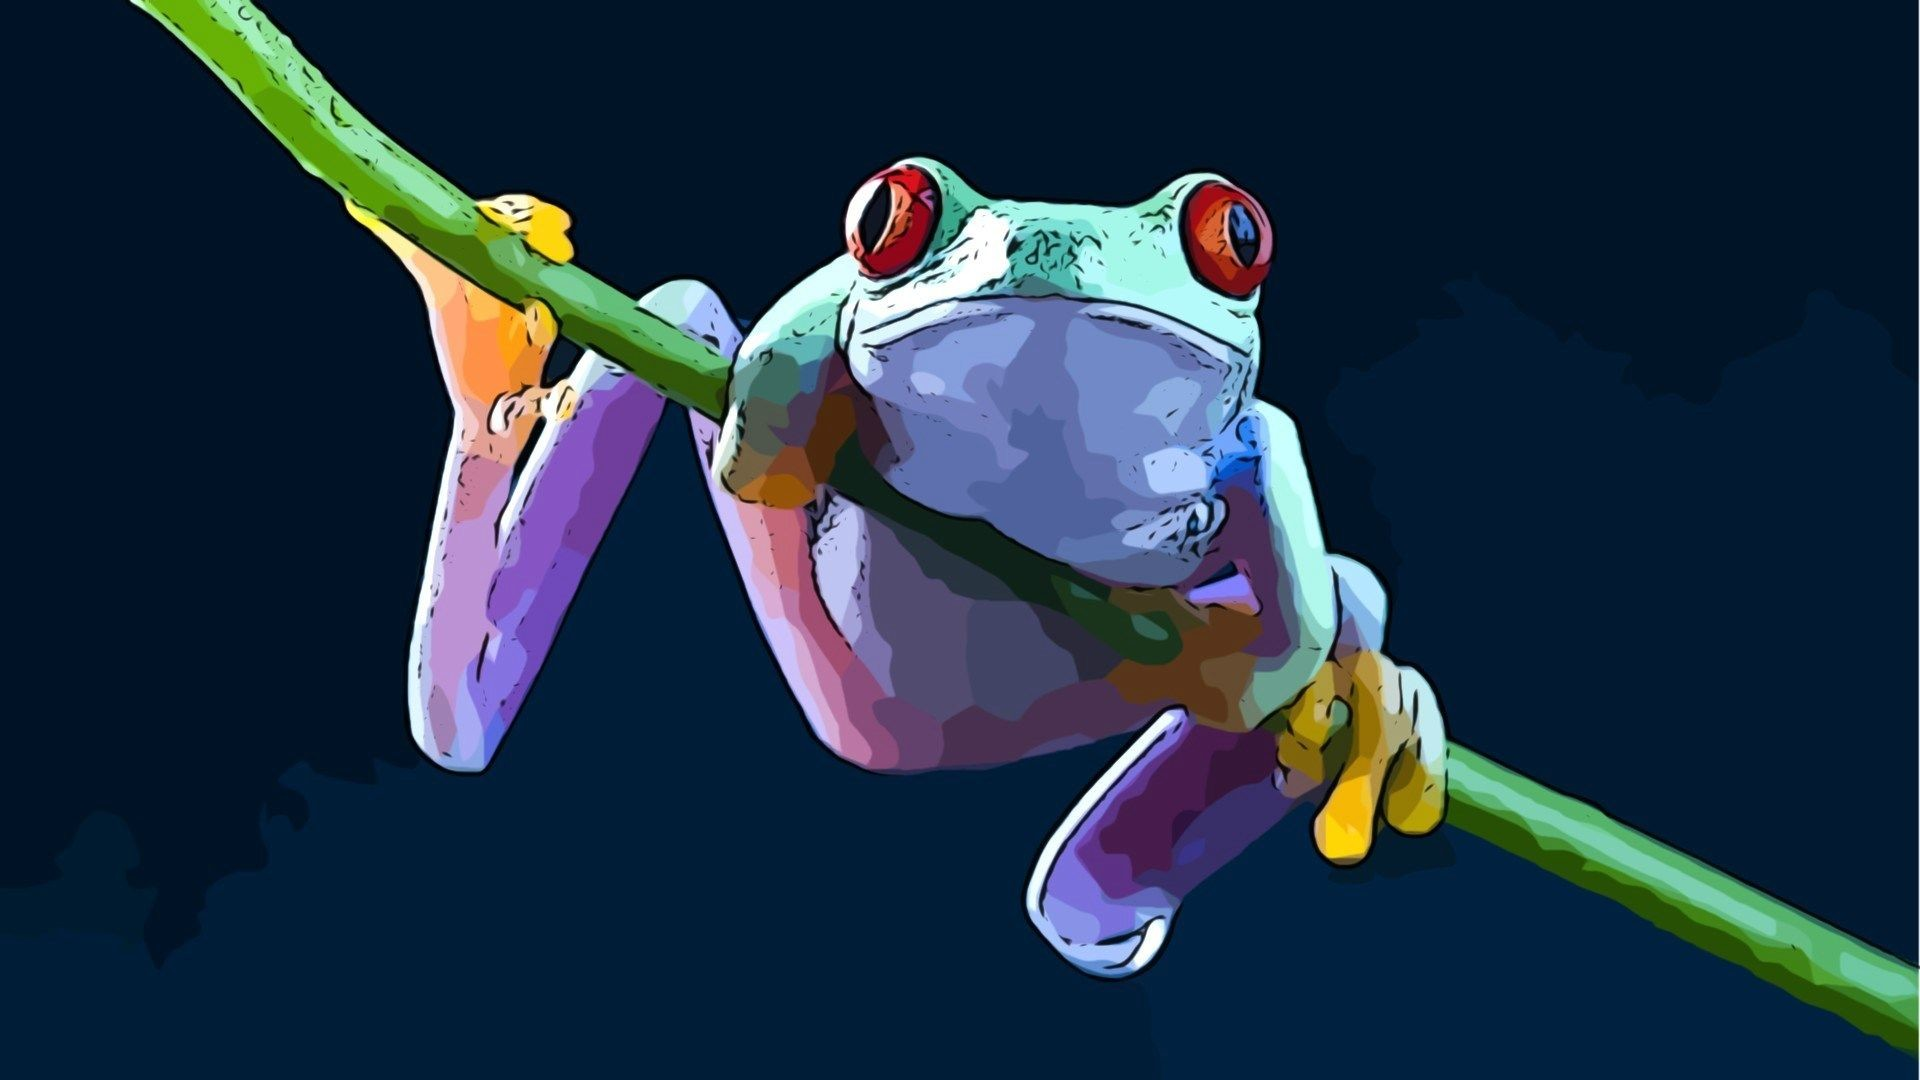 Res: 1920x1080, 1858073, free wallpaper and screensavers for tree frog